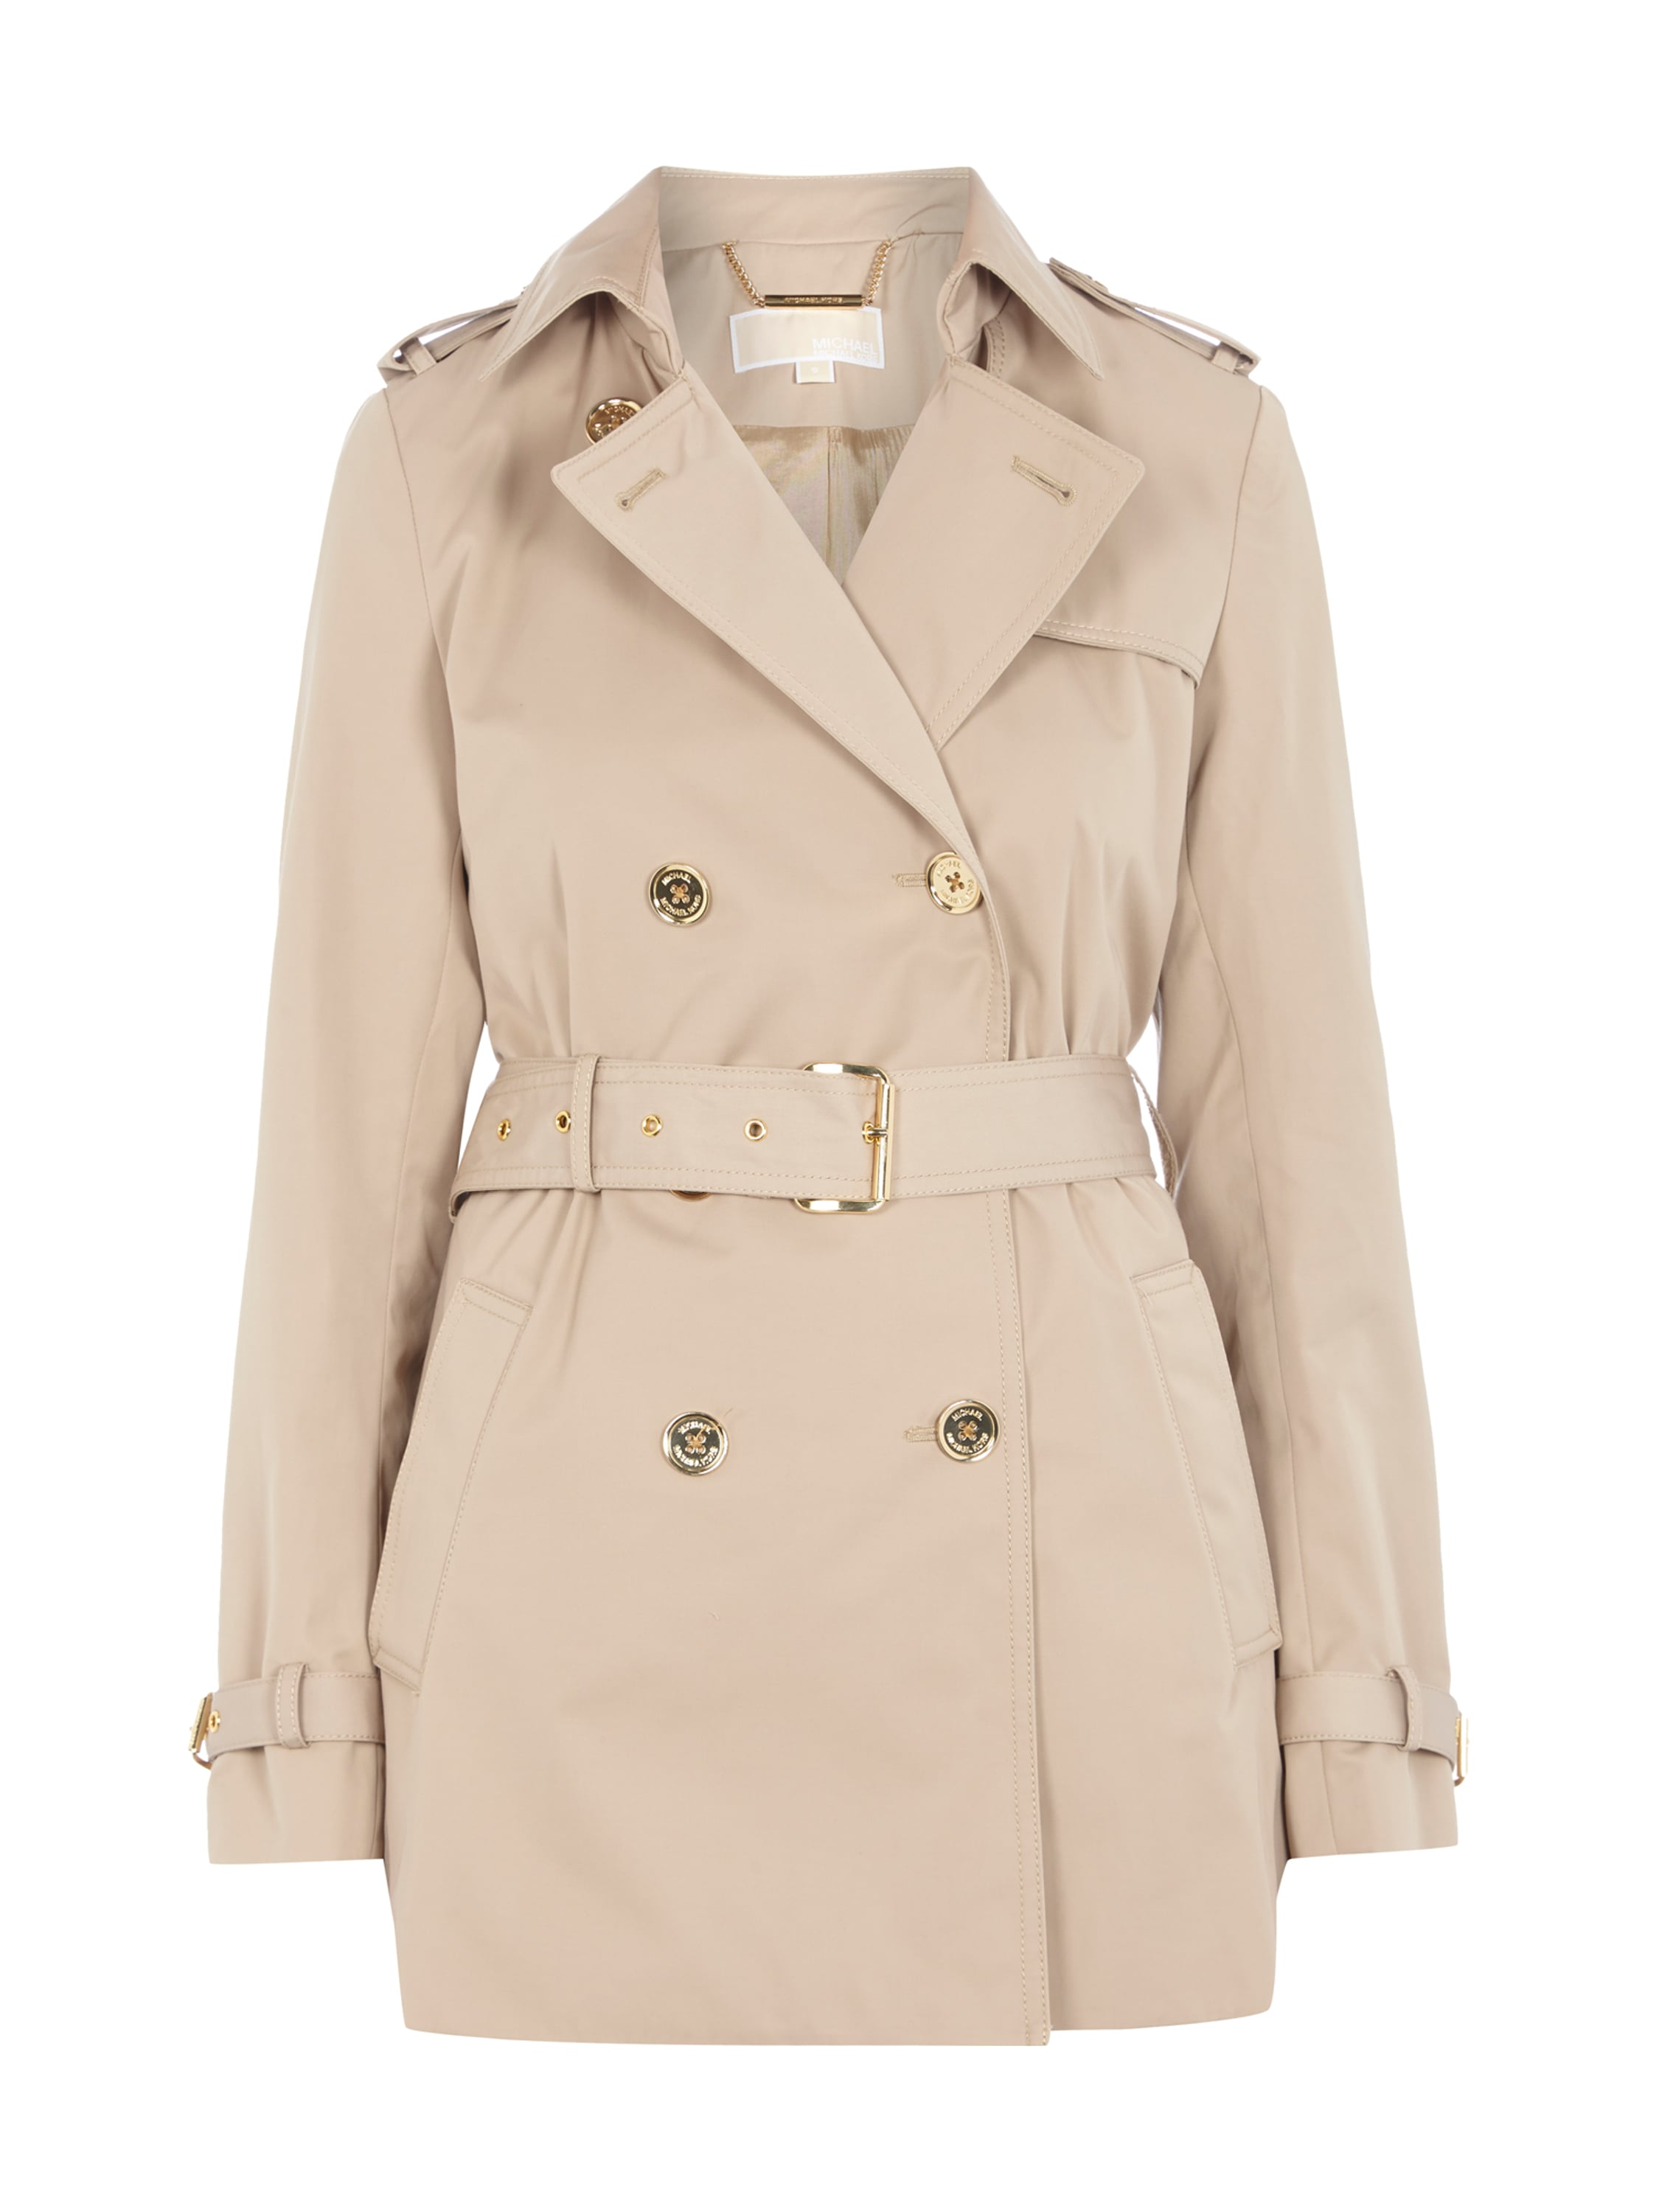 michael kors trenchcoat mit goldenen kn pfen in wei. Black Bedroom Furniture Sets. Home Design Ideas